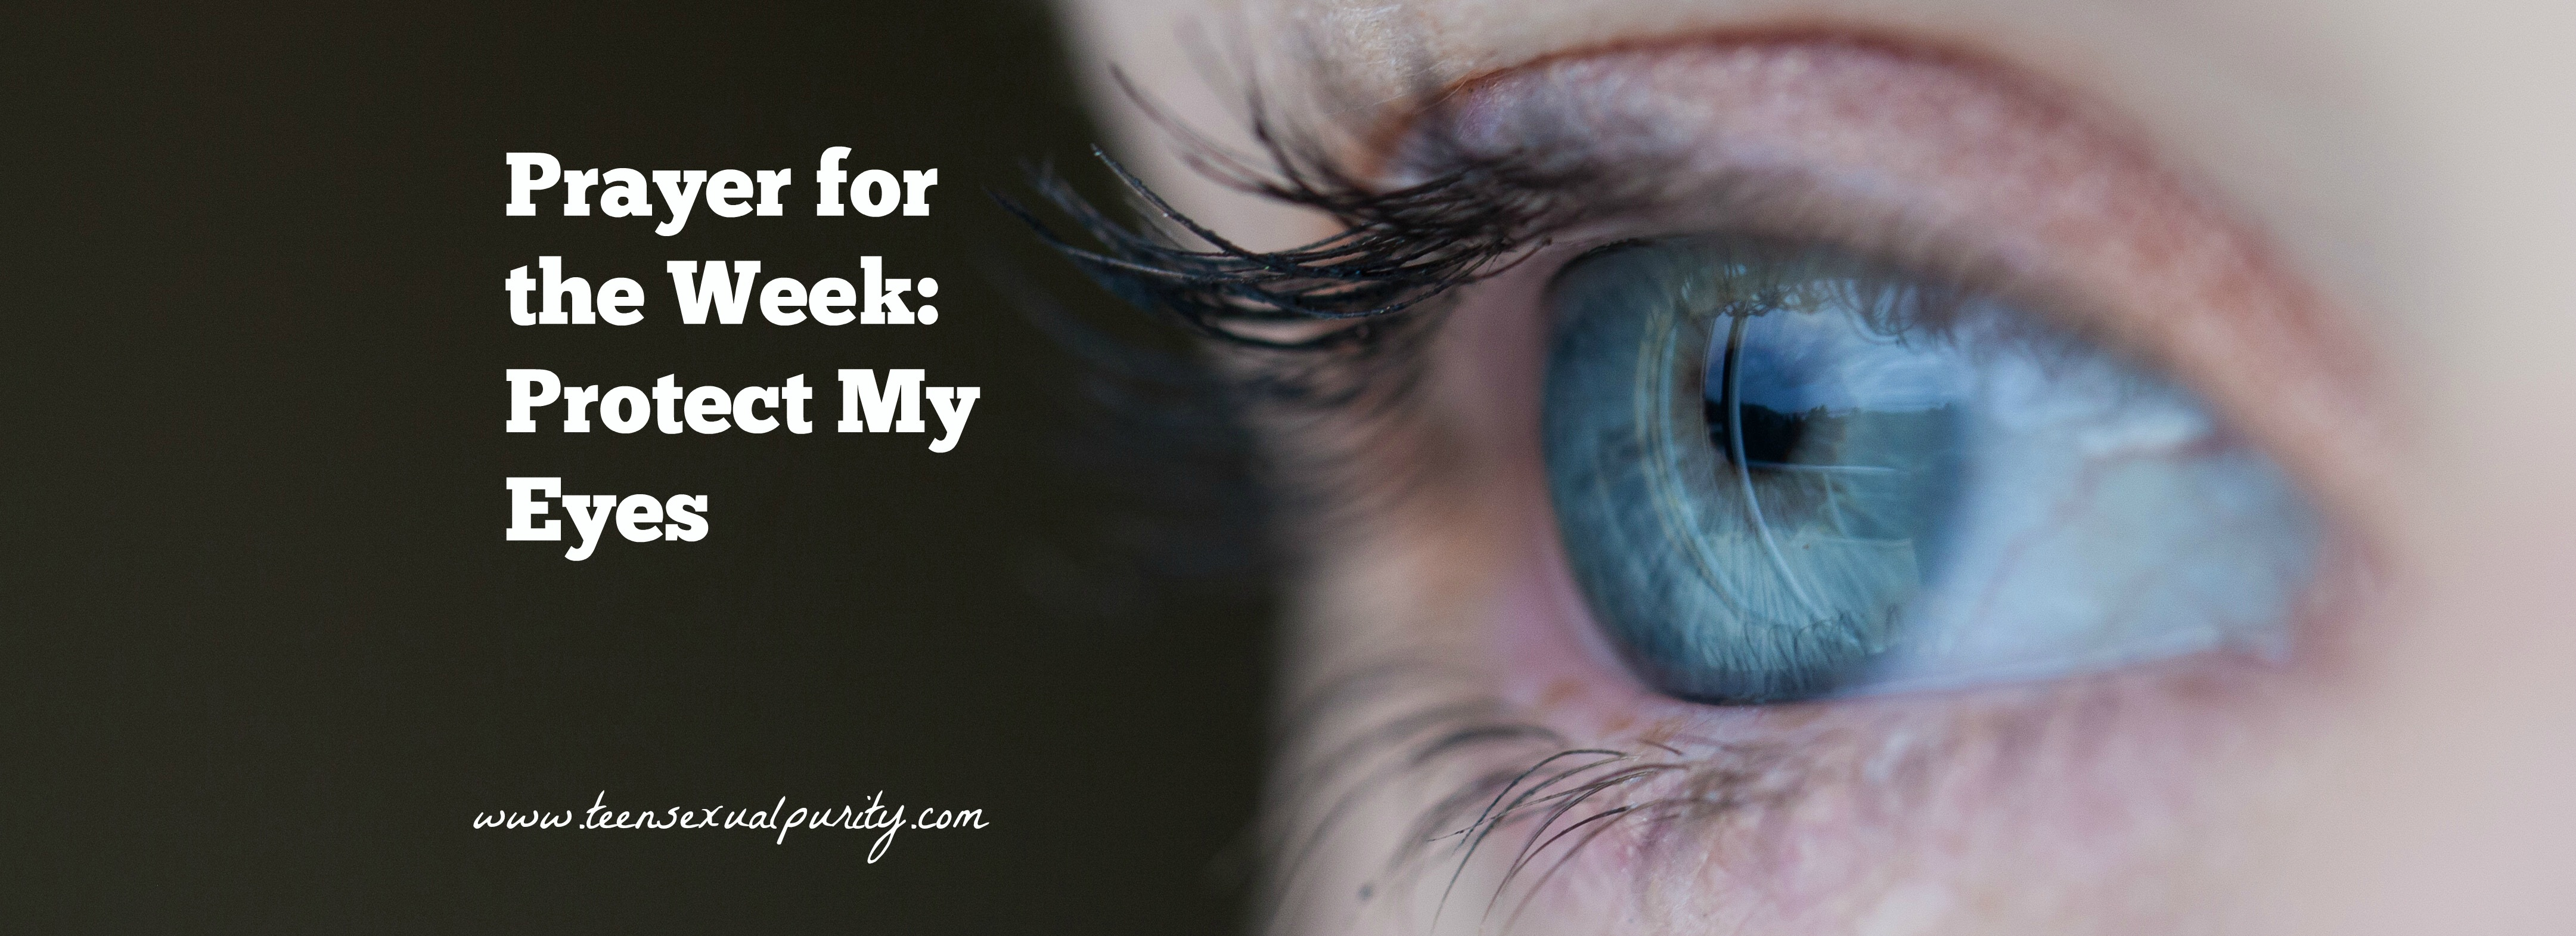 Prayer for the Week: Protect My Eyes